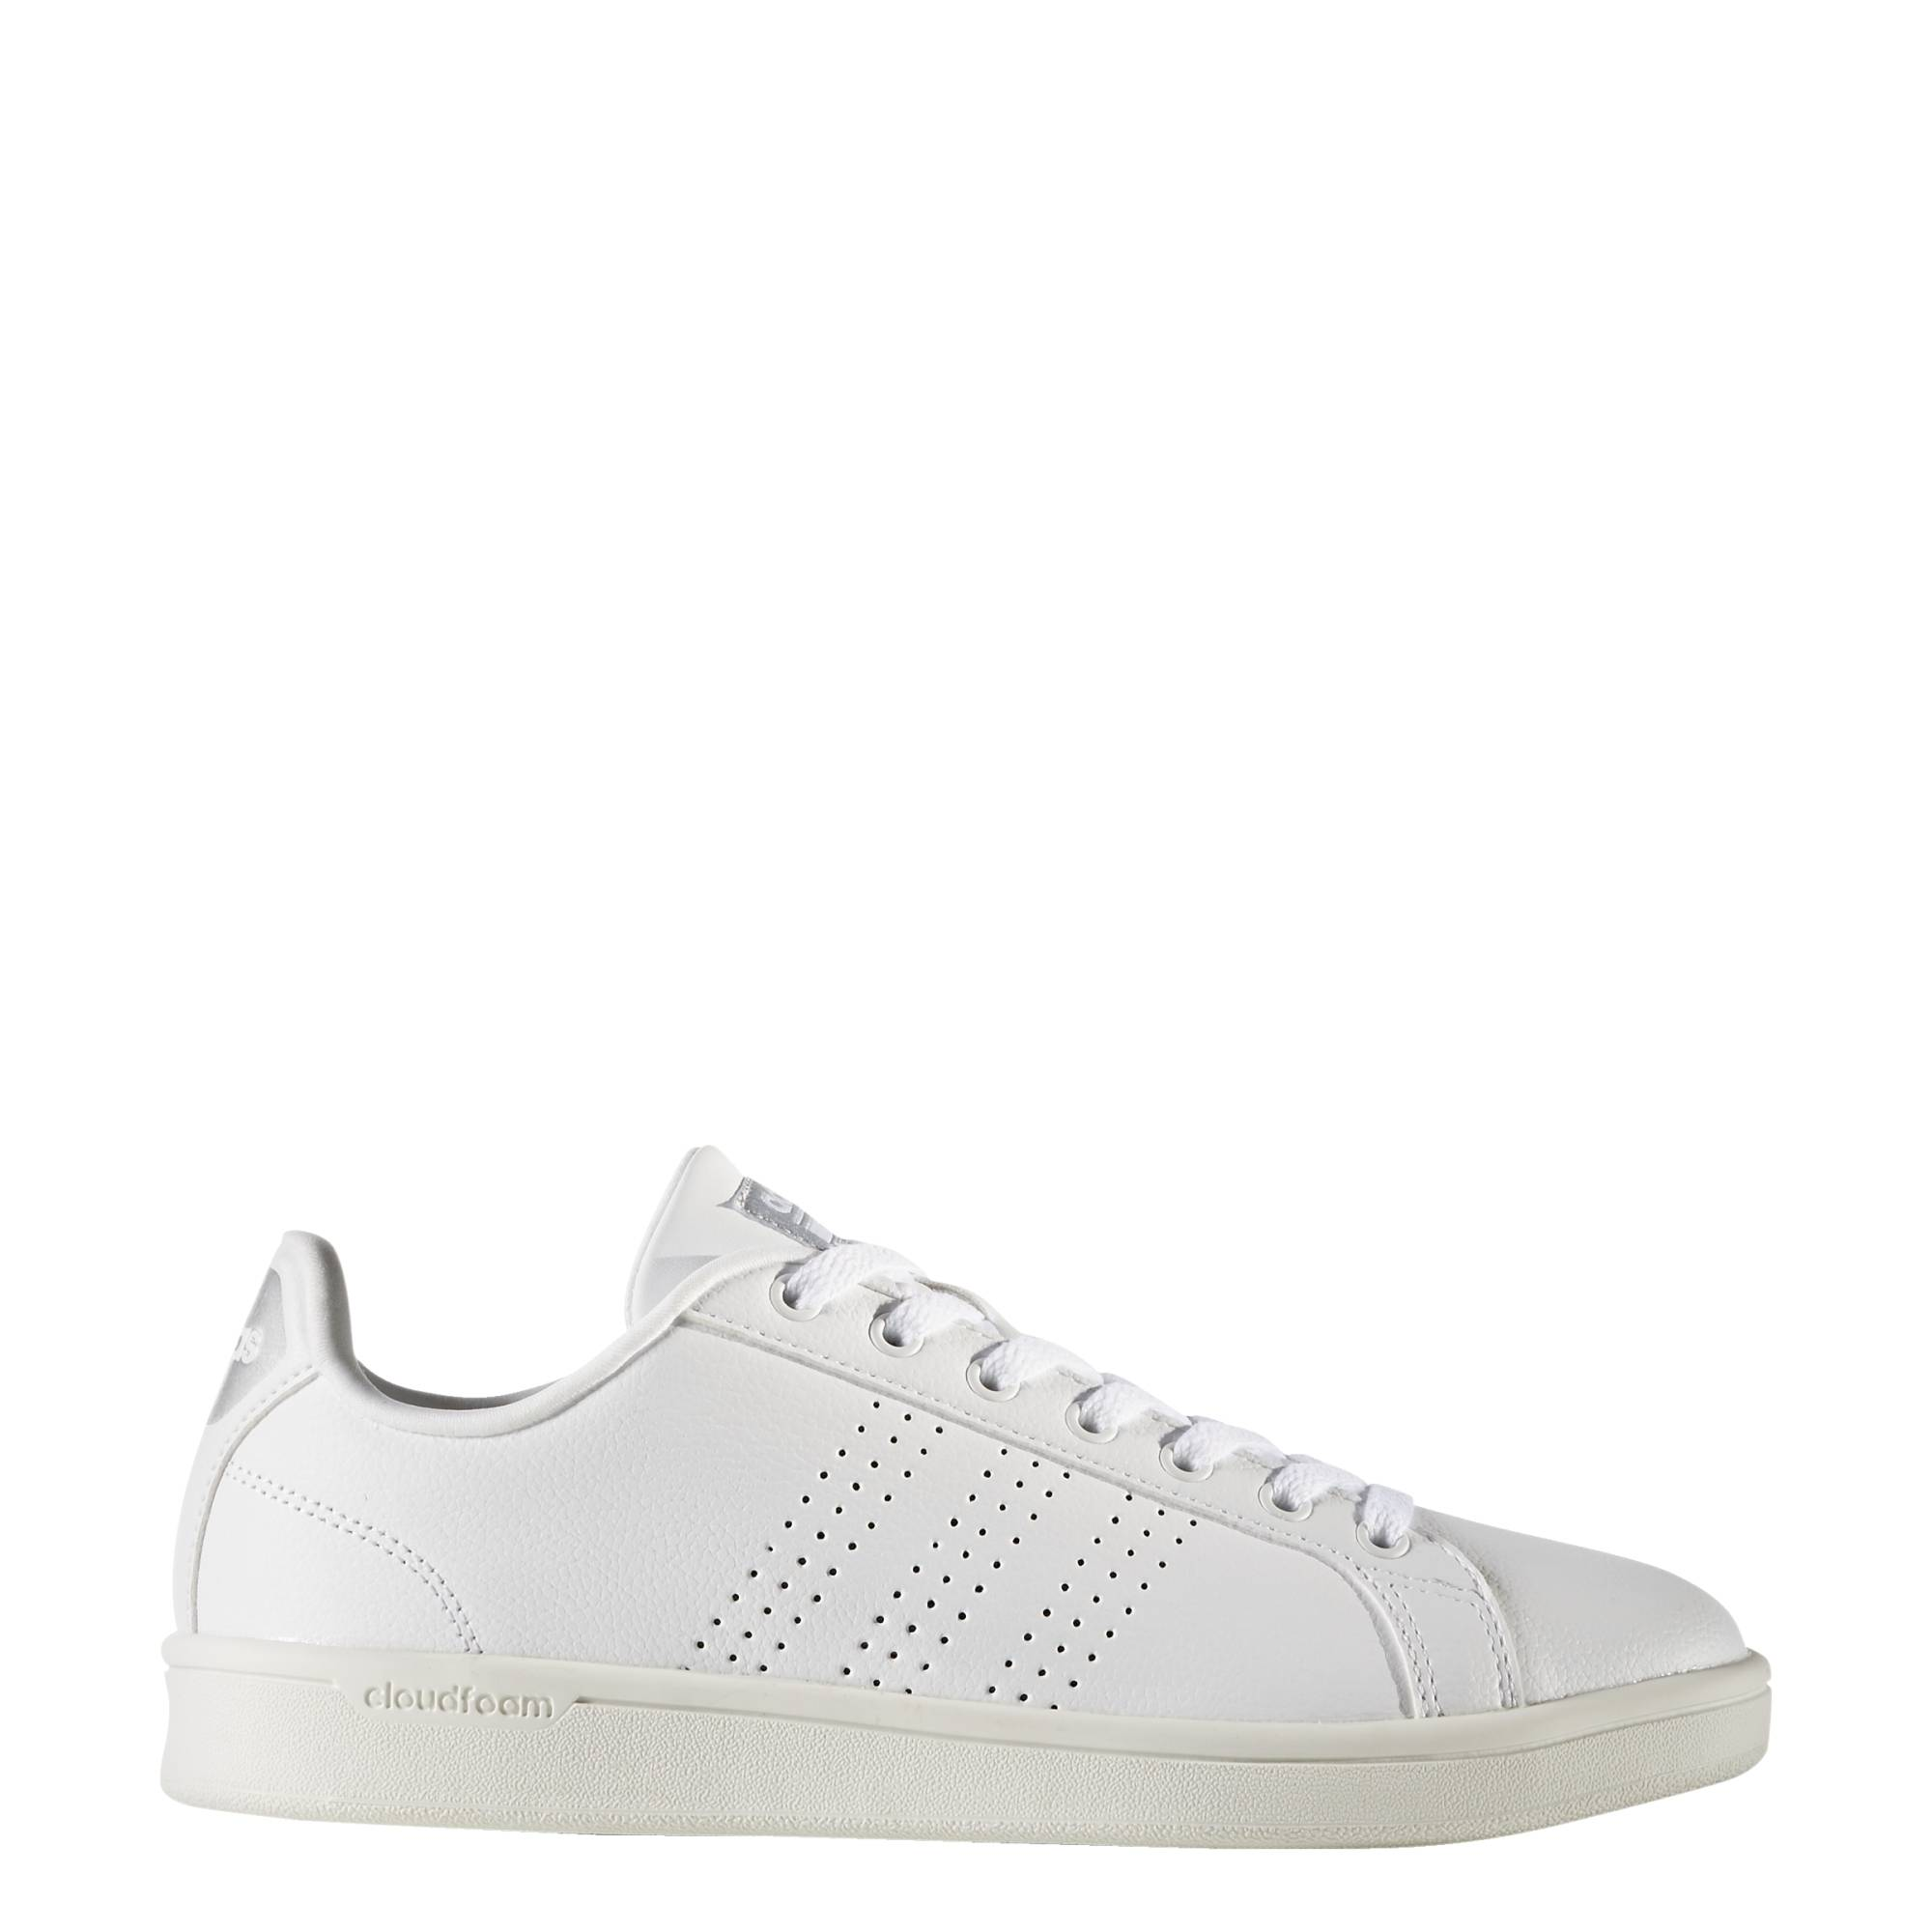 adidas cloudfoam advantage women's casual shoes